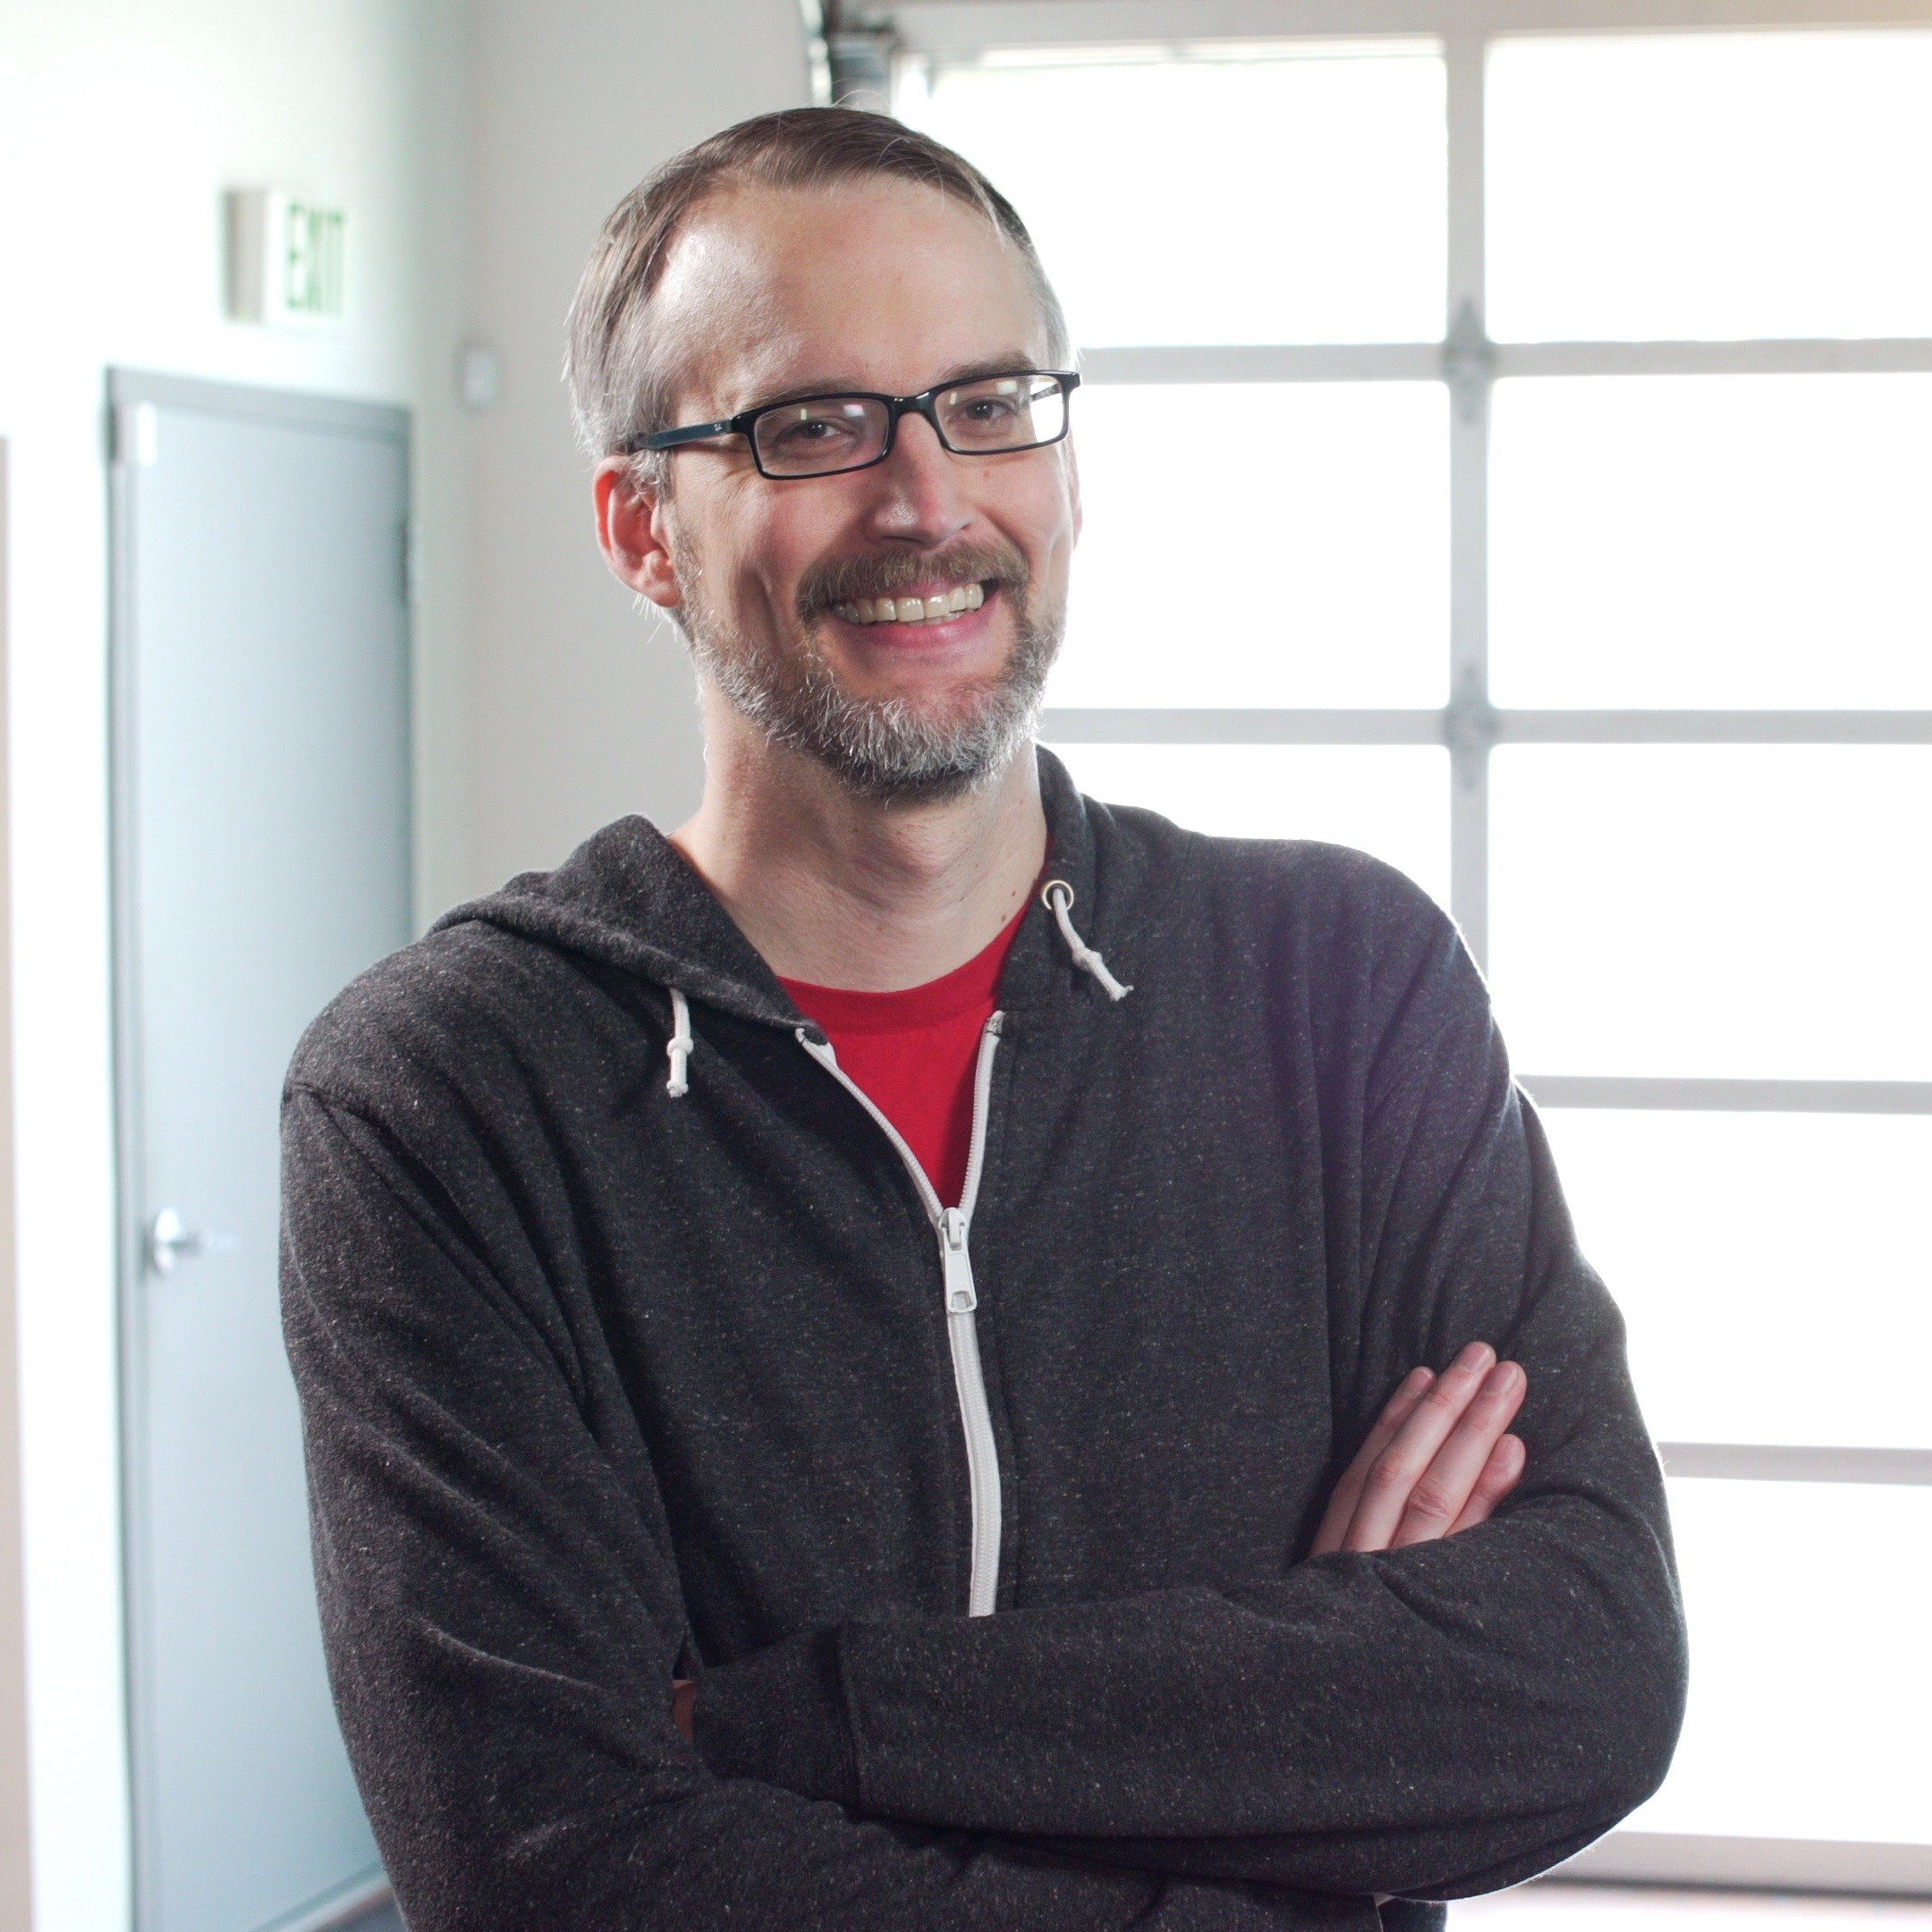 Tech Moves: Blockchain game lands former Wizards of the Coast exec